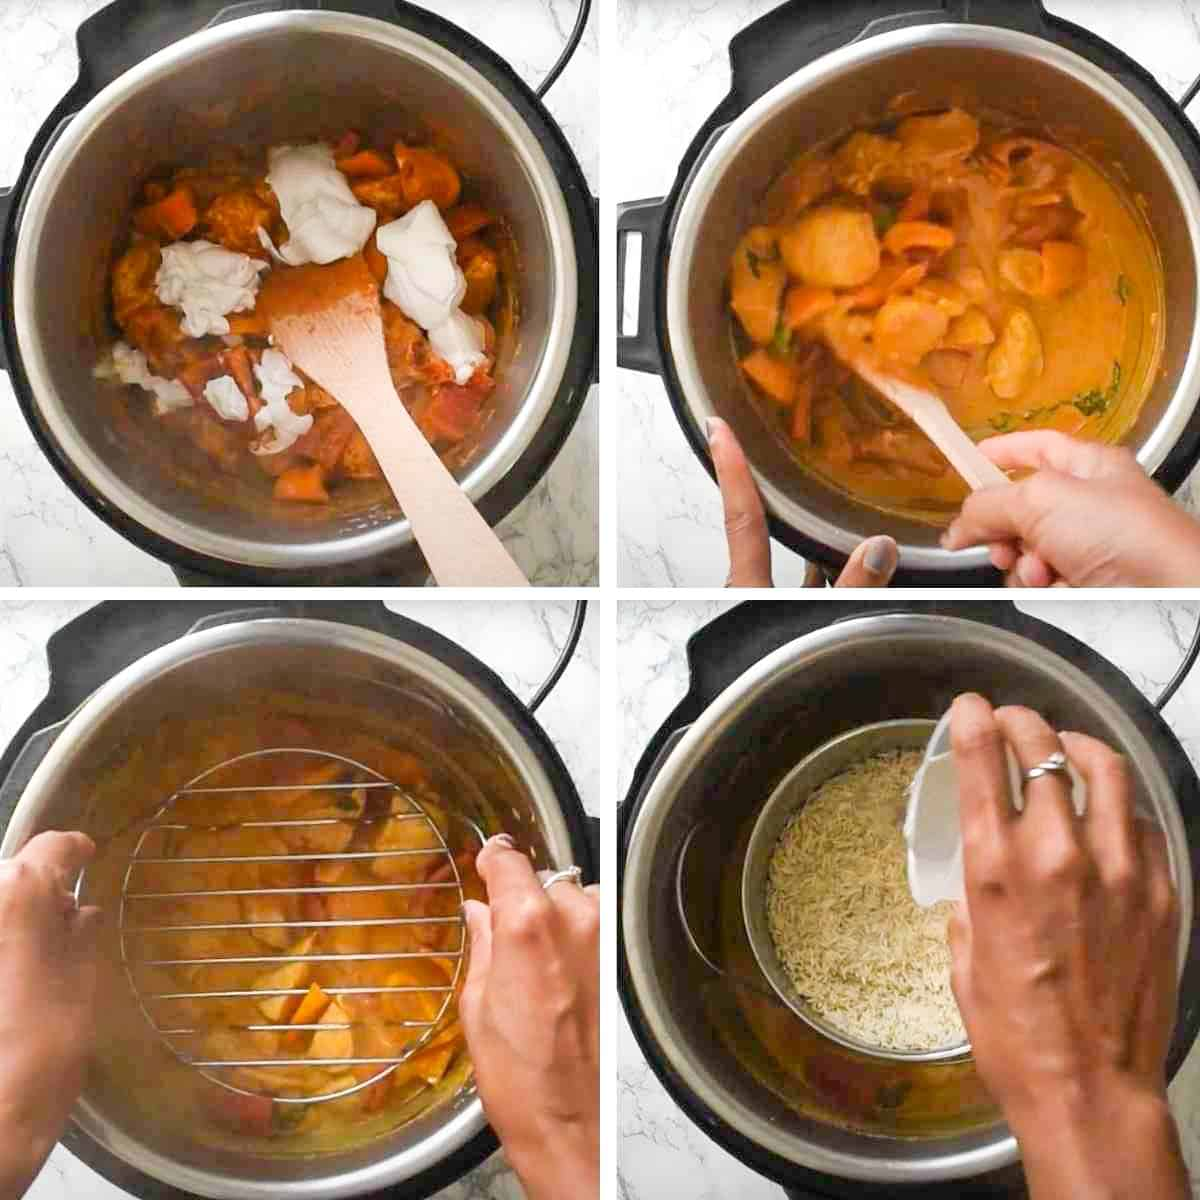 Collage showing steps for making rice and chicken curry in the Instant Pot